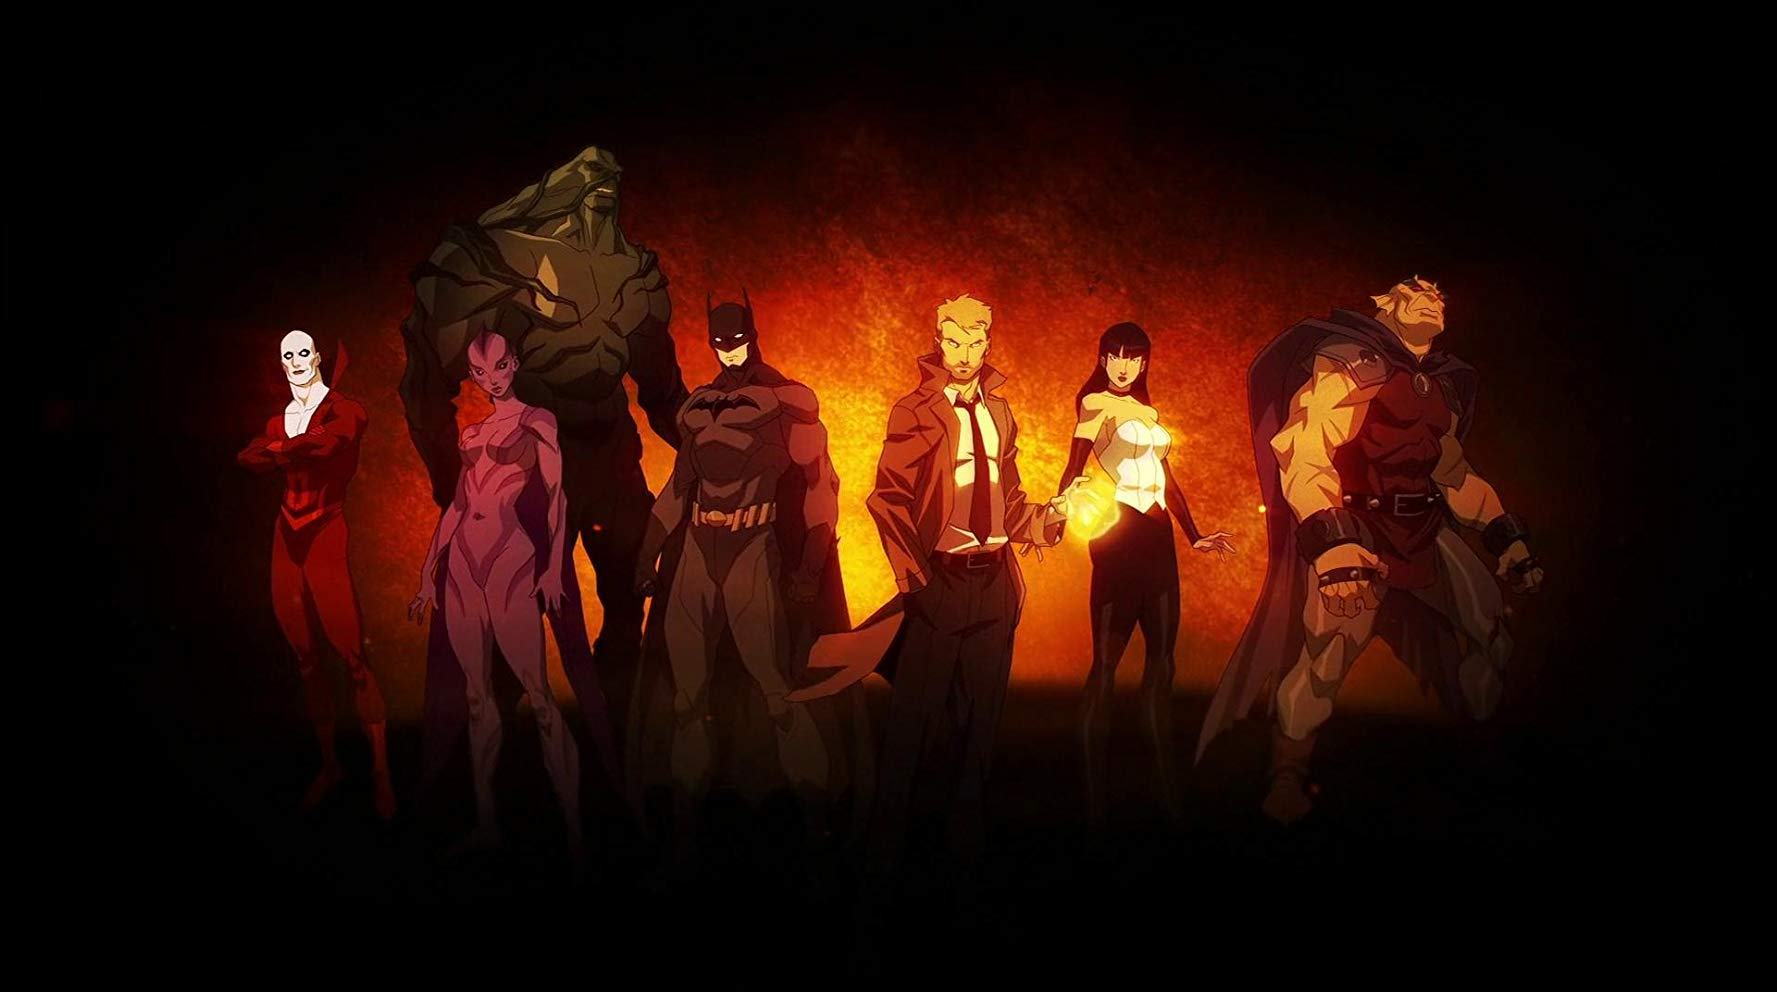 Promotional artwork character line-up - Deadman, Black Orchid, Swamp Thing, Batman, John Constantine, Zatanna and Etrigan in Justice League Dark (2017)